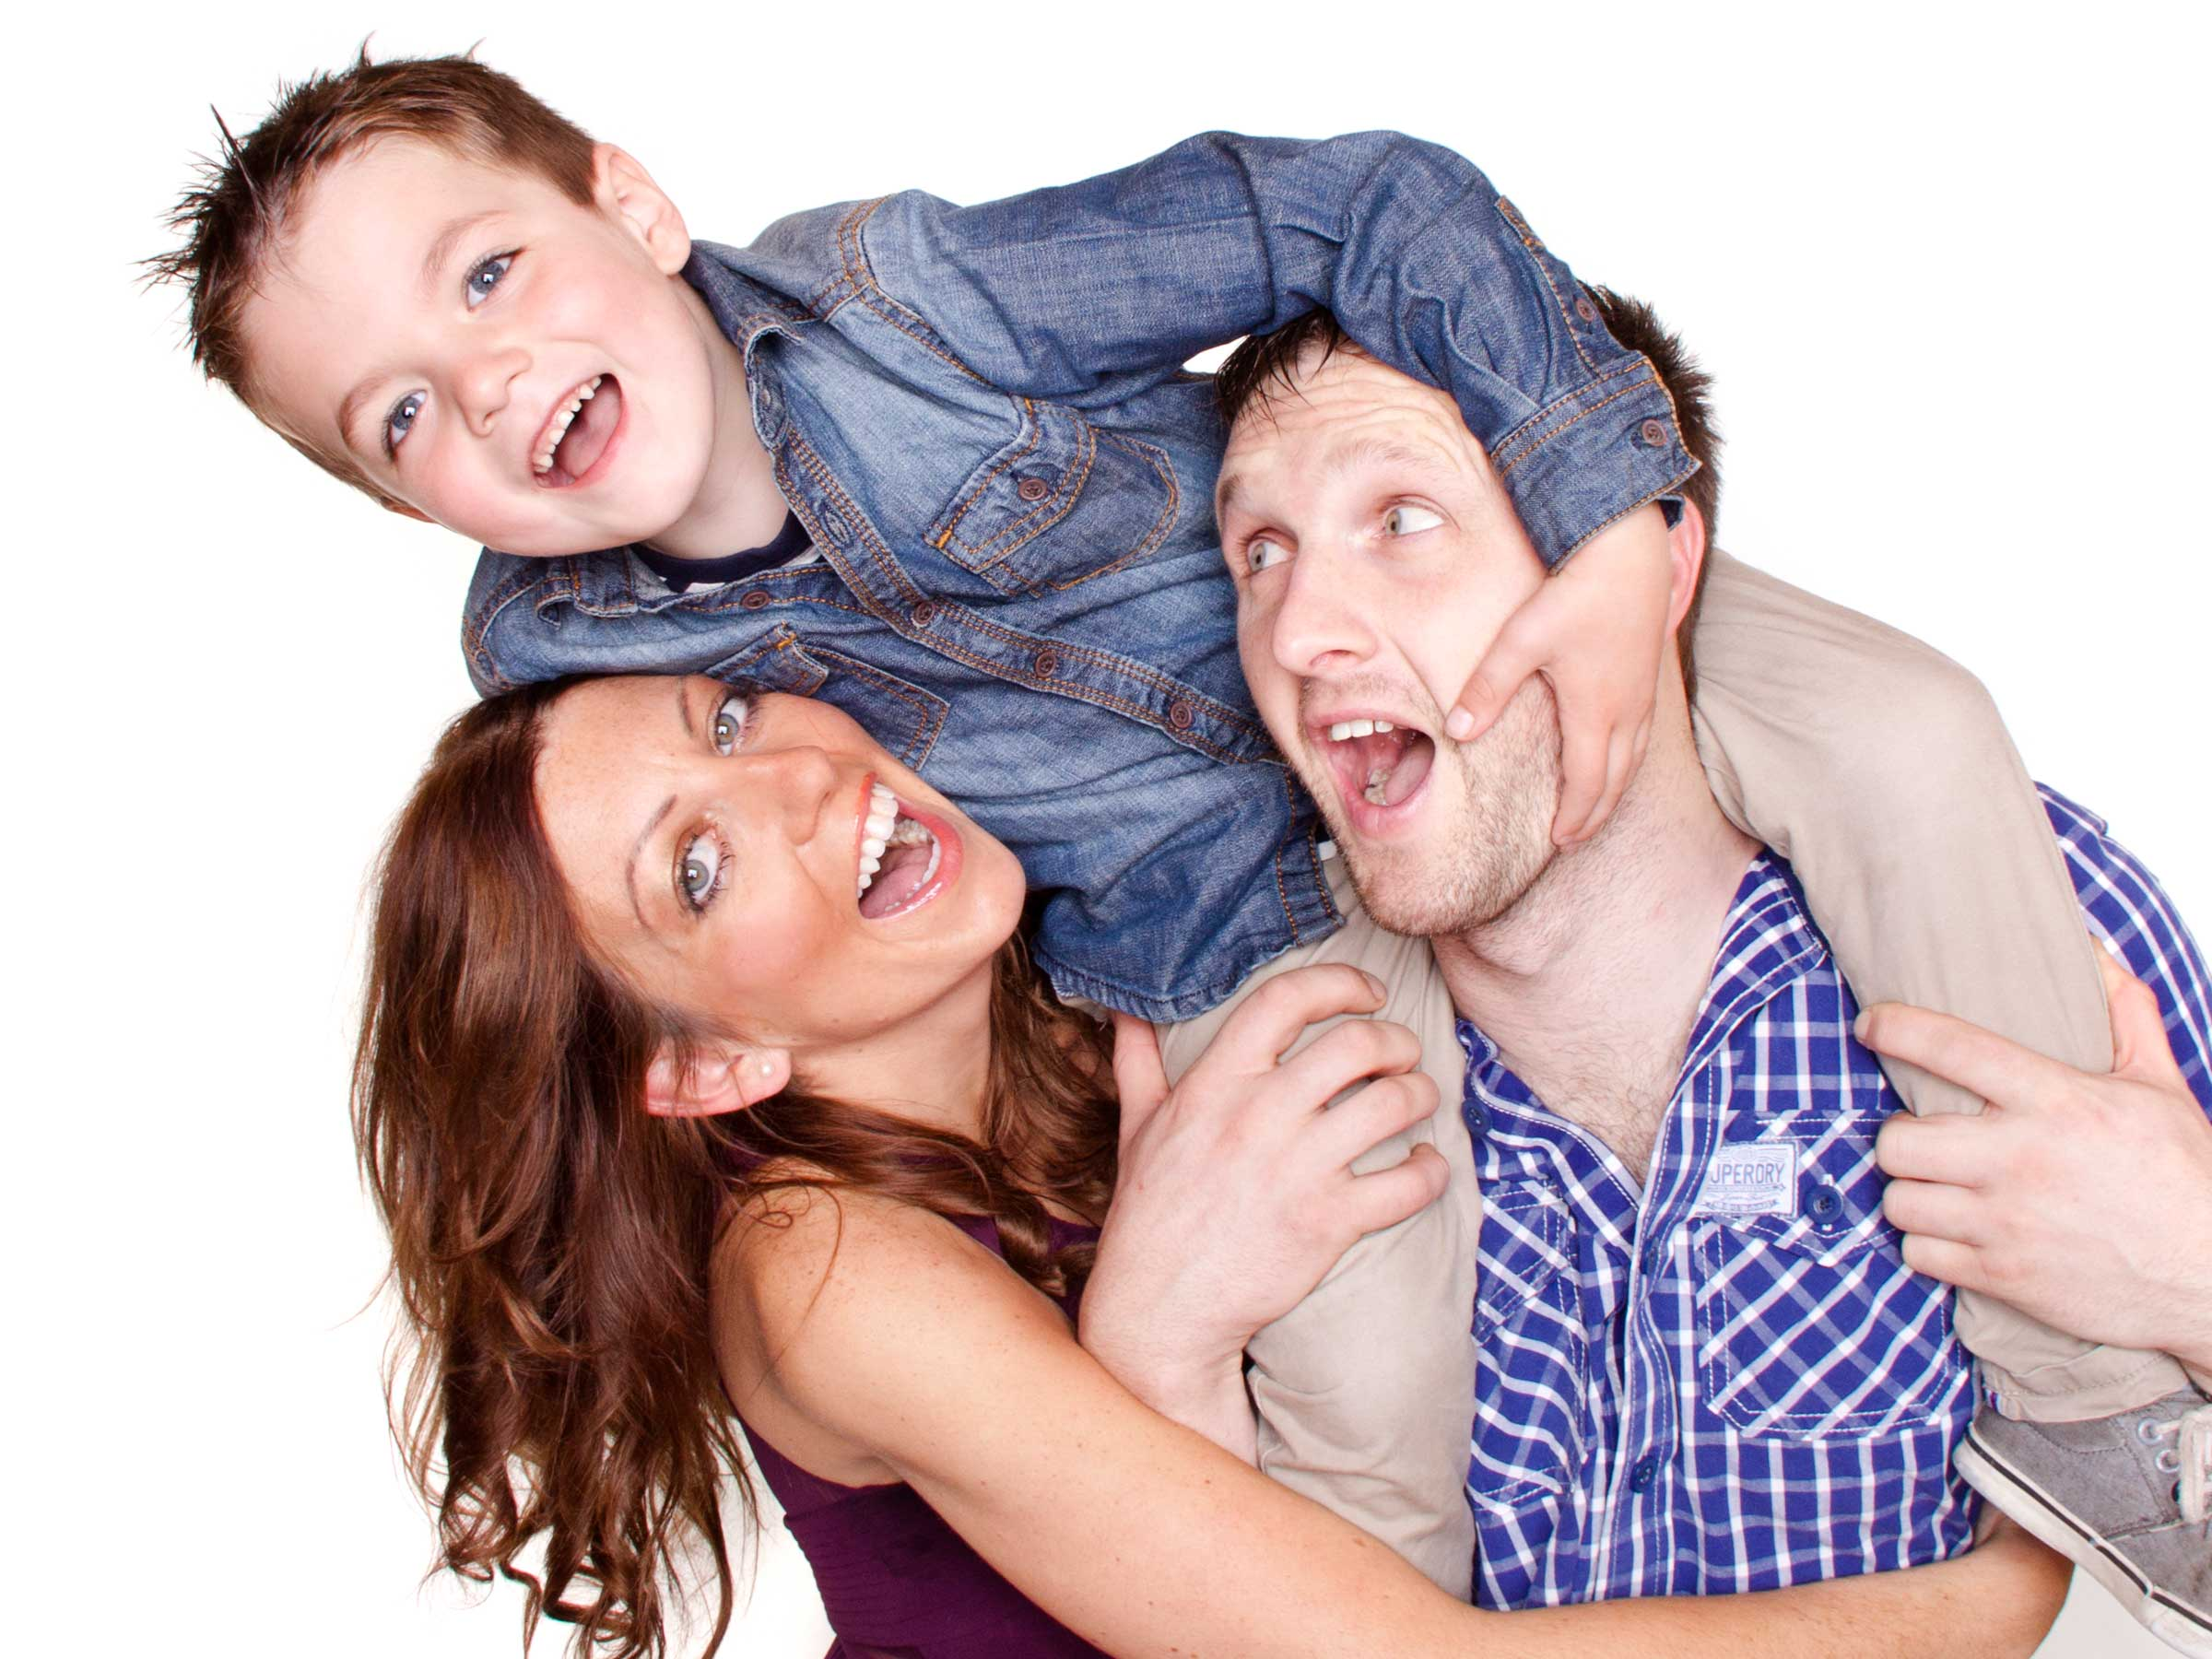 01A-Home-Shoot-Family-Boy-On-Shoulders-Colour-Philip-Murray-Photography-Dublin